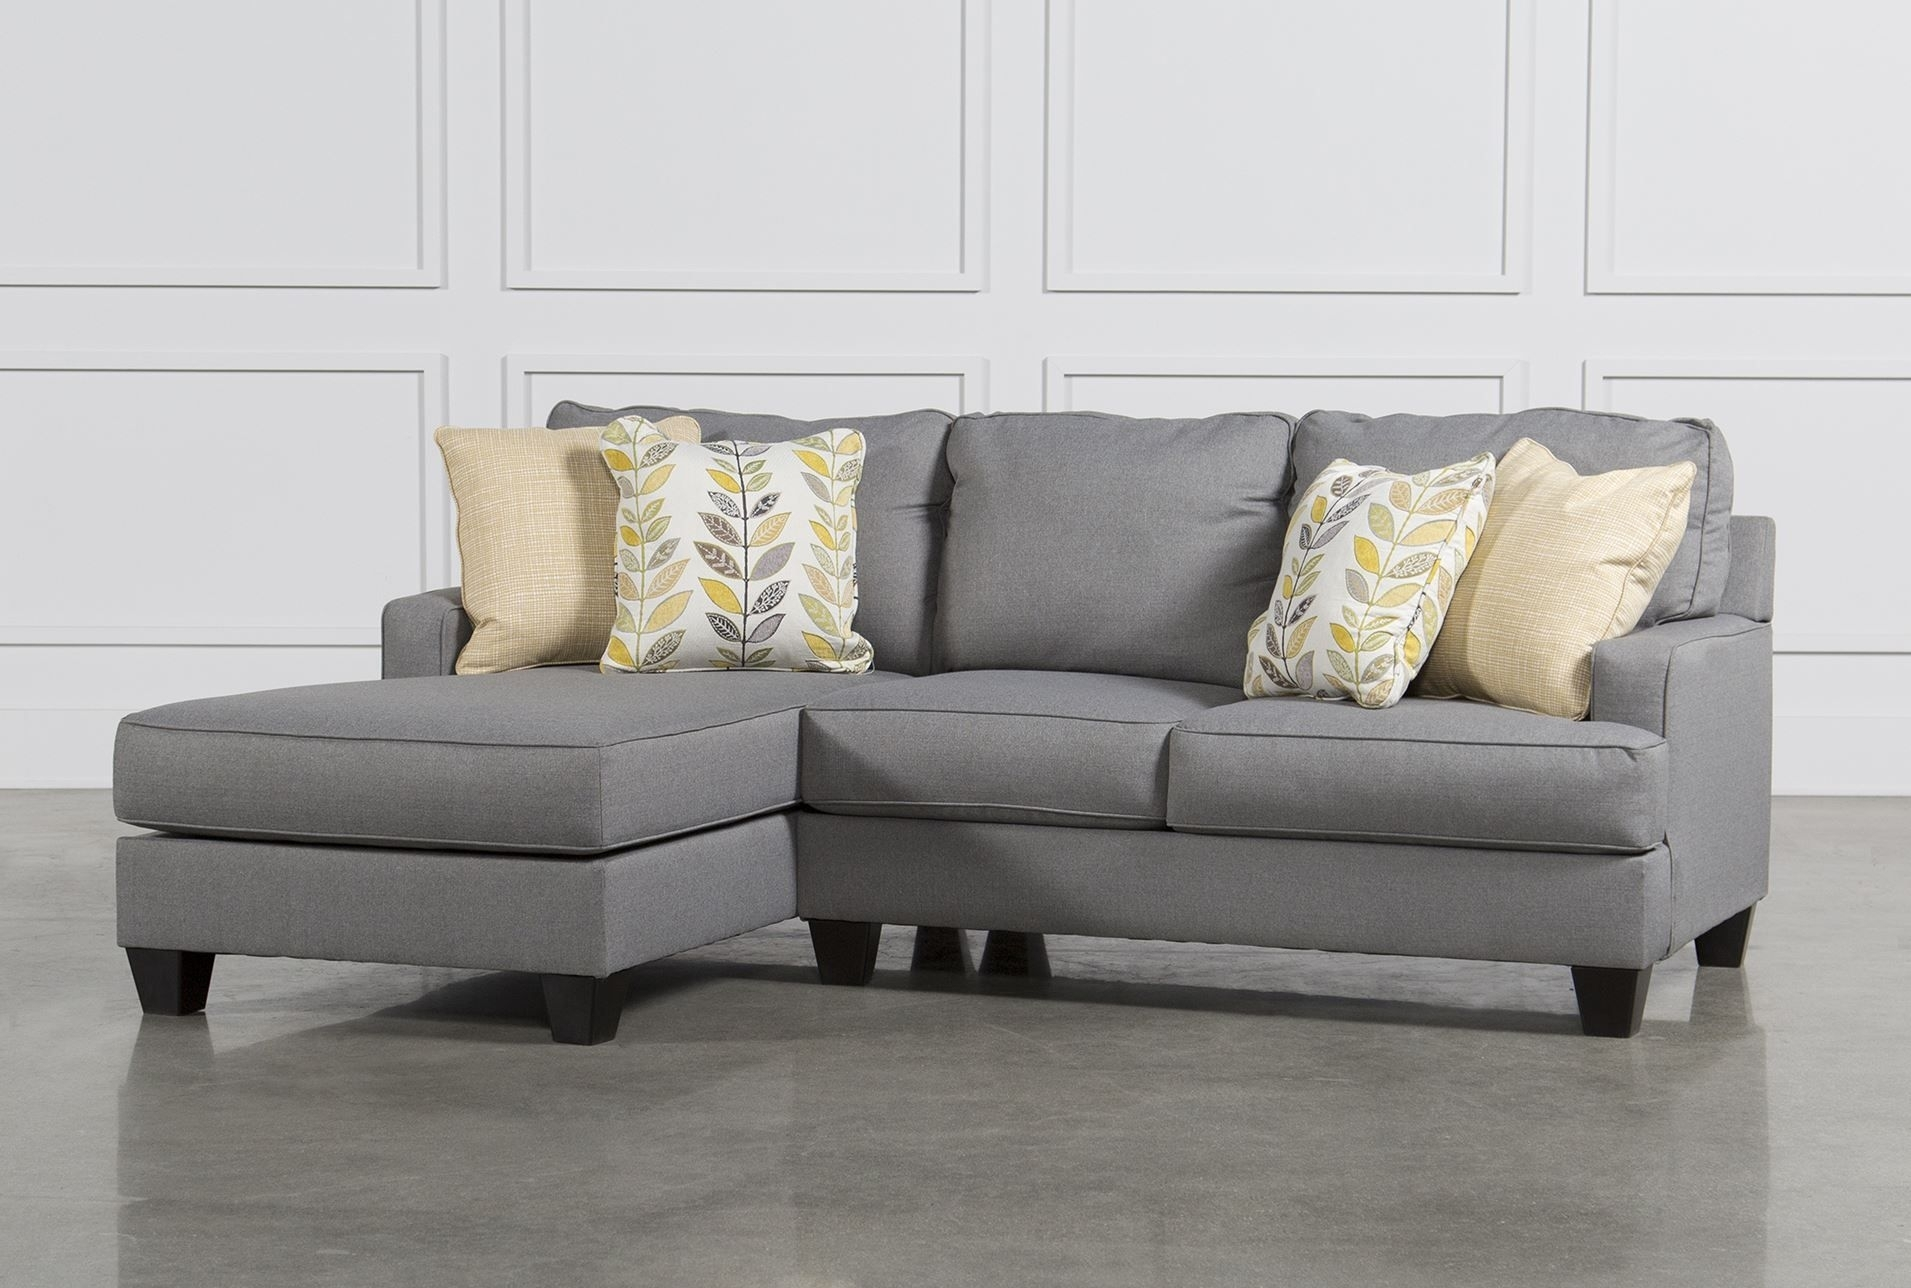 Chamberly 2 Piece Sectional W/laf Chaise - Signature | Light Casual with regard to Delano 2 Piece Sectionals With Laf Oversized Chaise (Image 7 of 30)